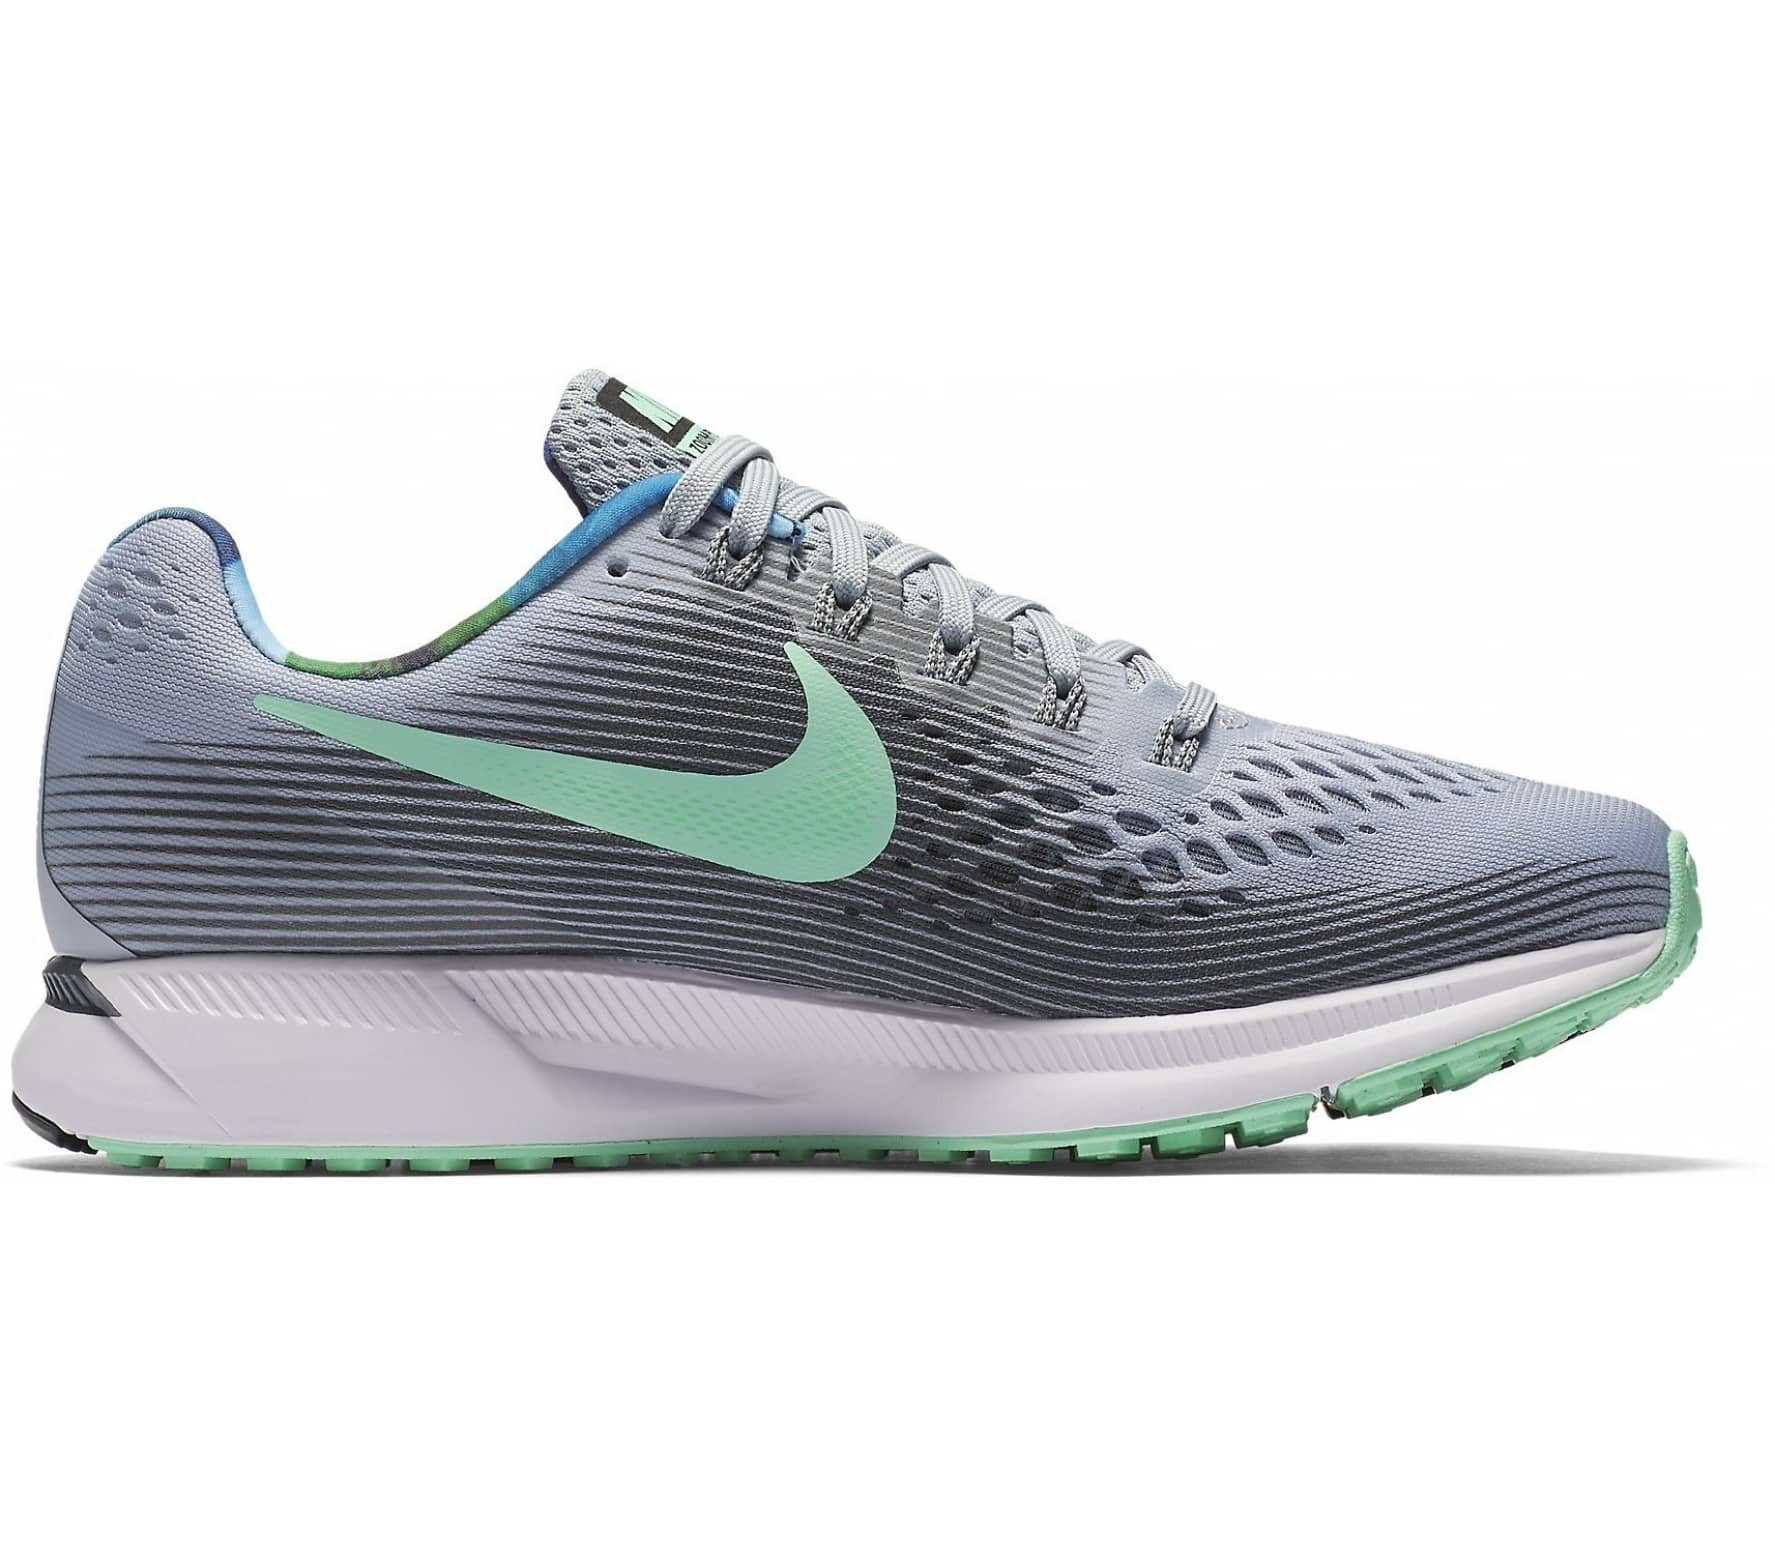 cheap for discount 0be23 73a3c Nike - Air Zoom Pegasus 34 Solstice Damen Laufschuh (grau hellgrün)